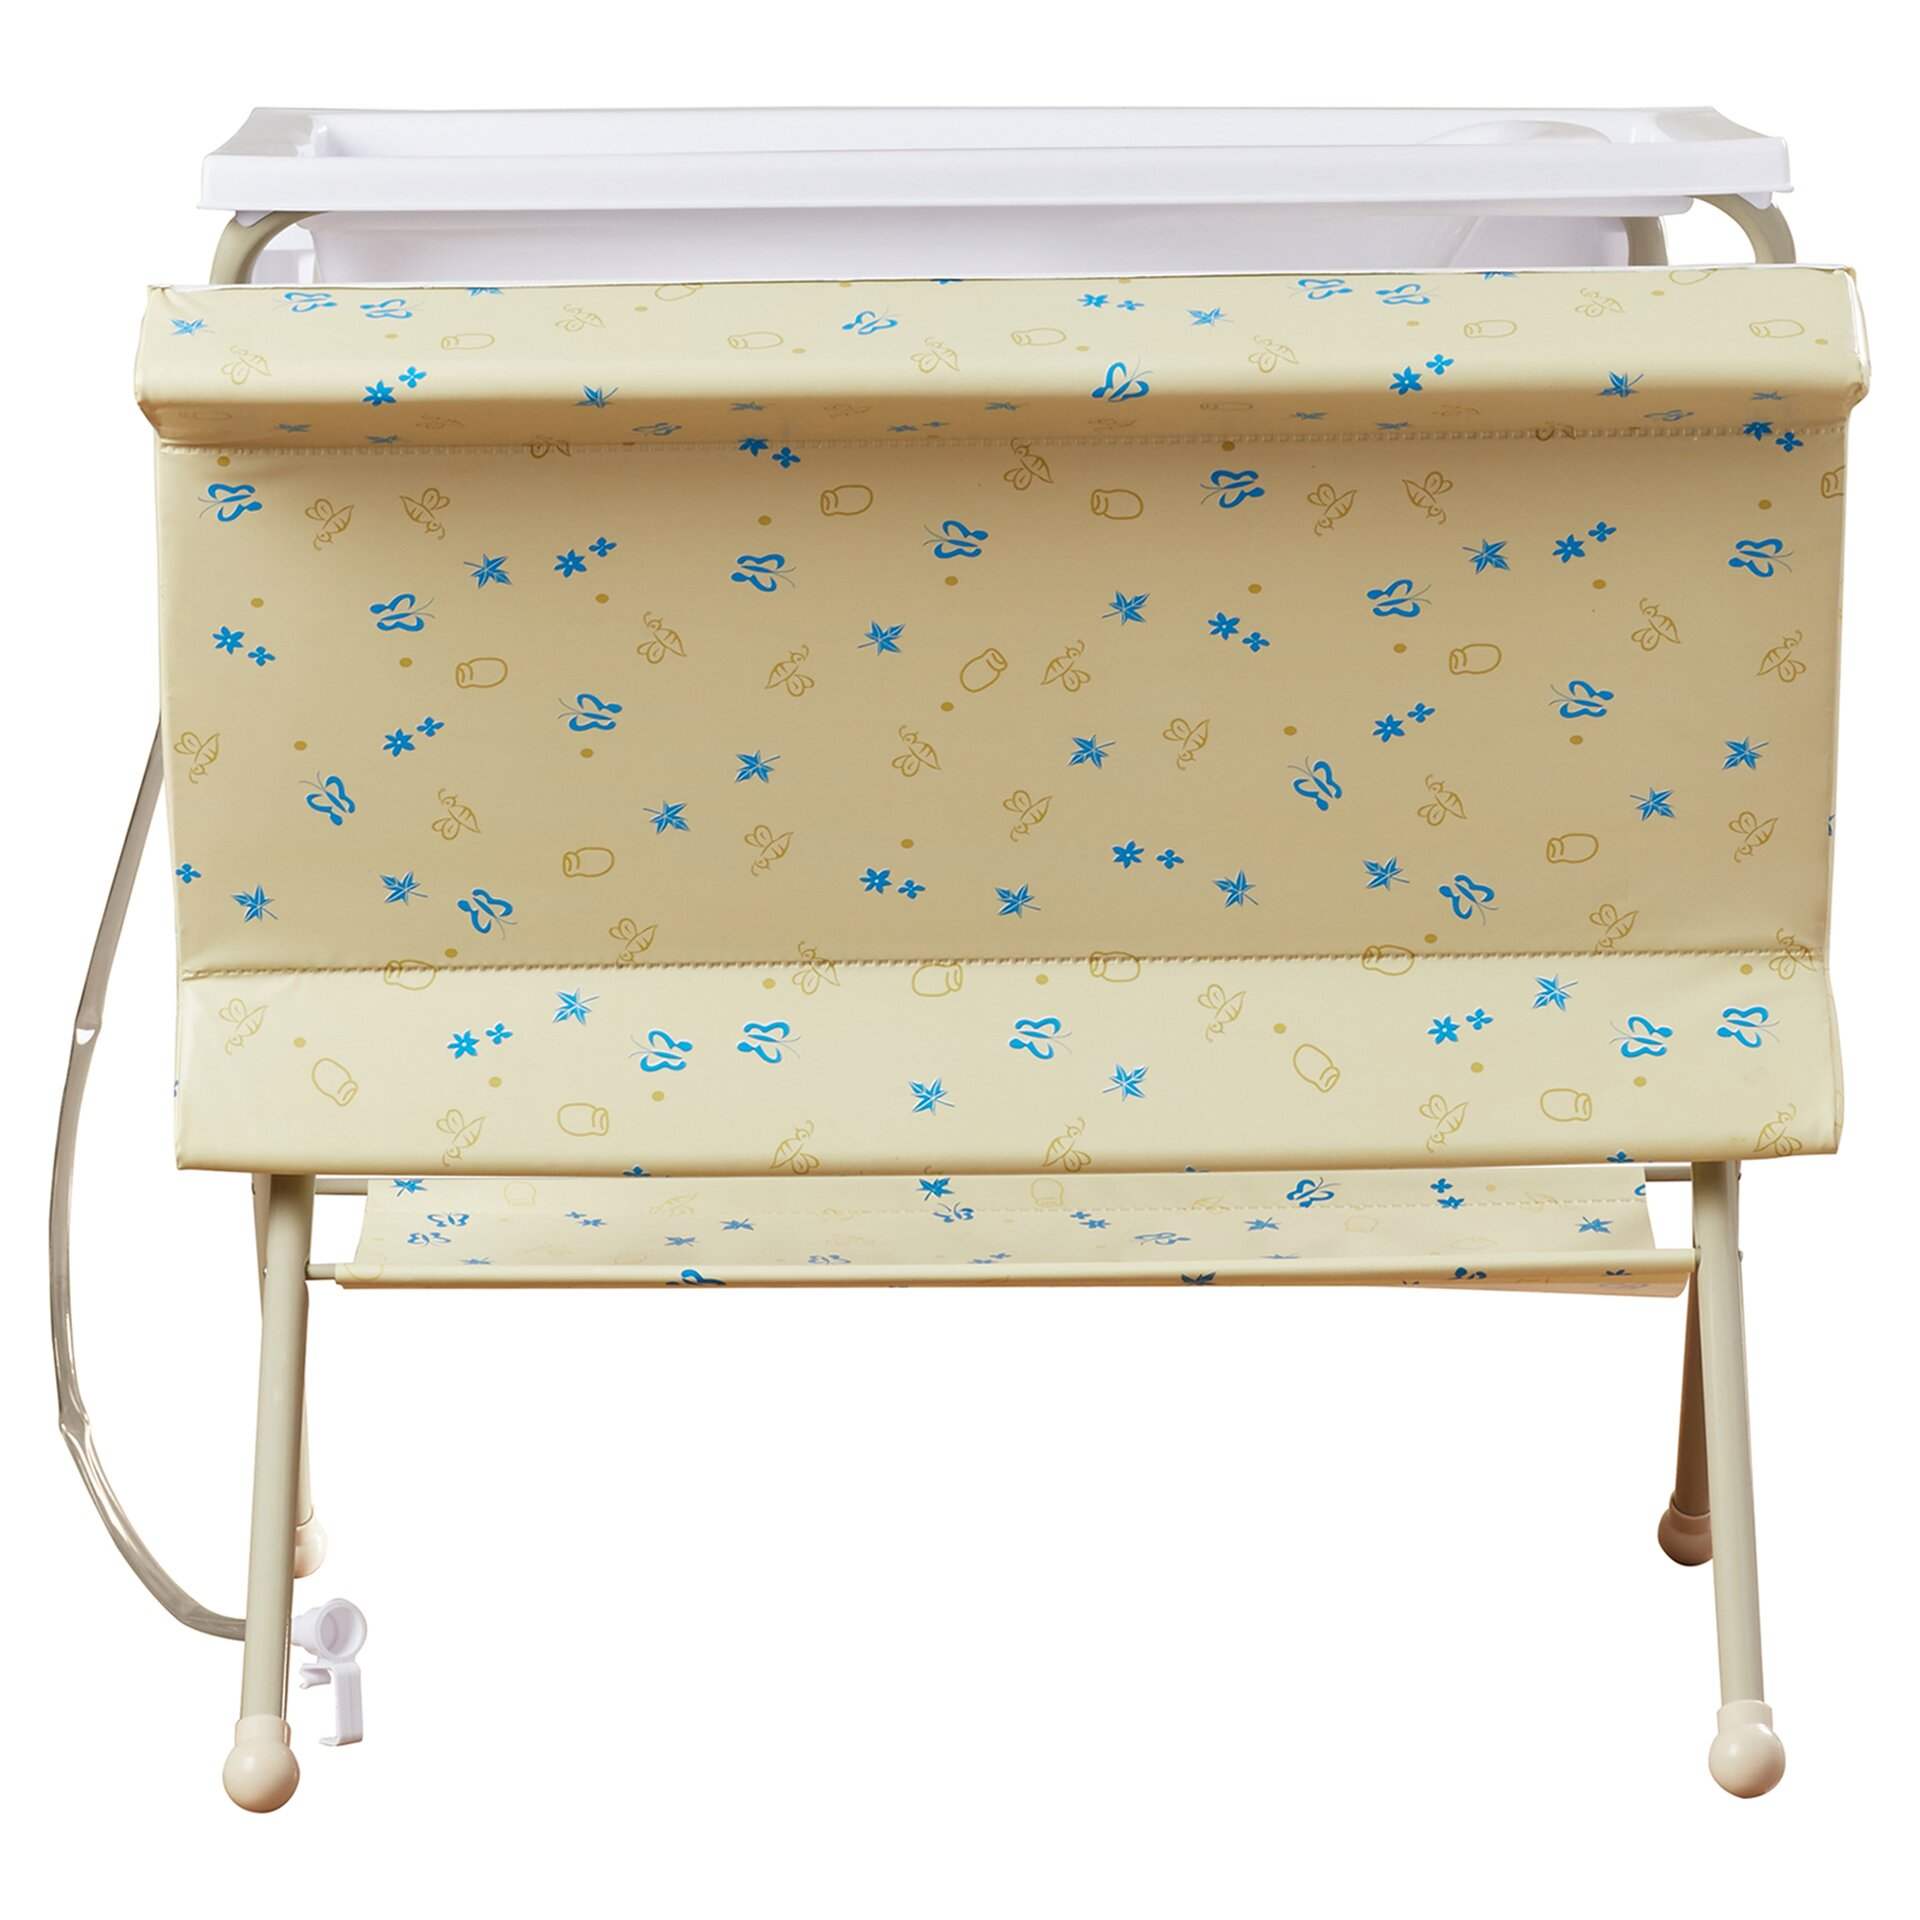 Baby Diego Bathinette Baby Bath Changing Table Combo   Baby Diego  Bathinette Foldable Bathtub And Changer Combo